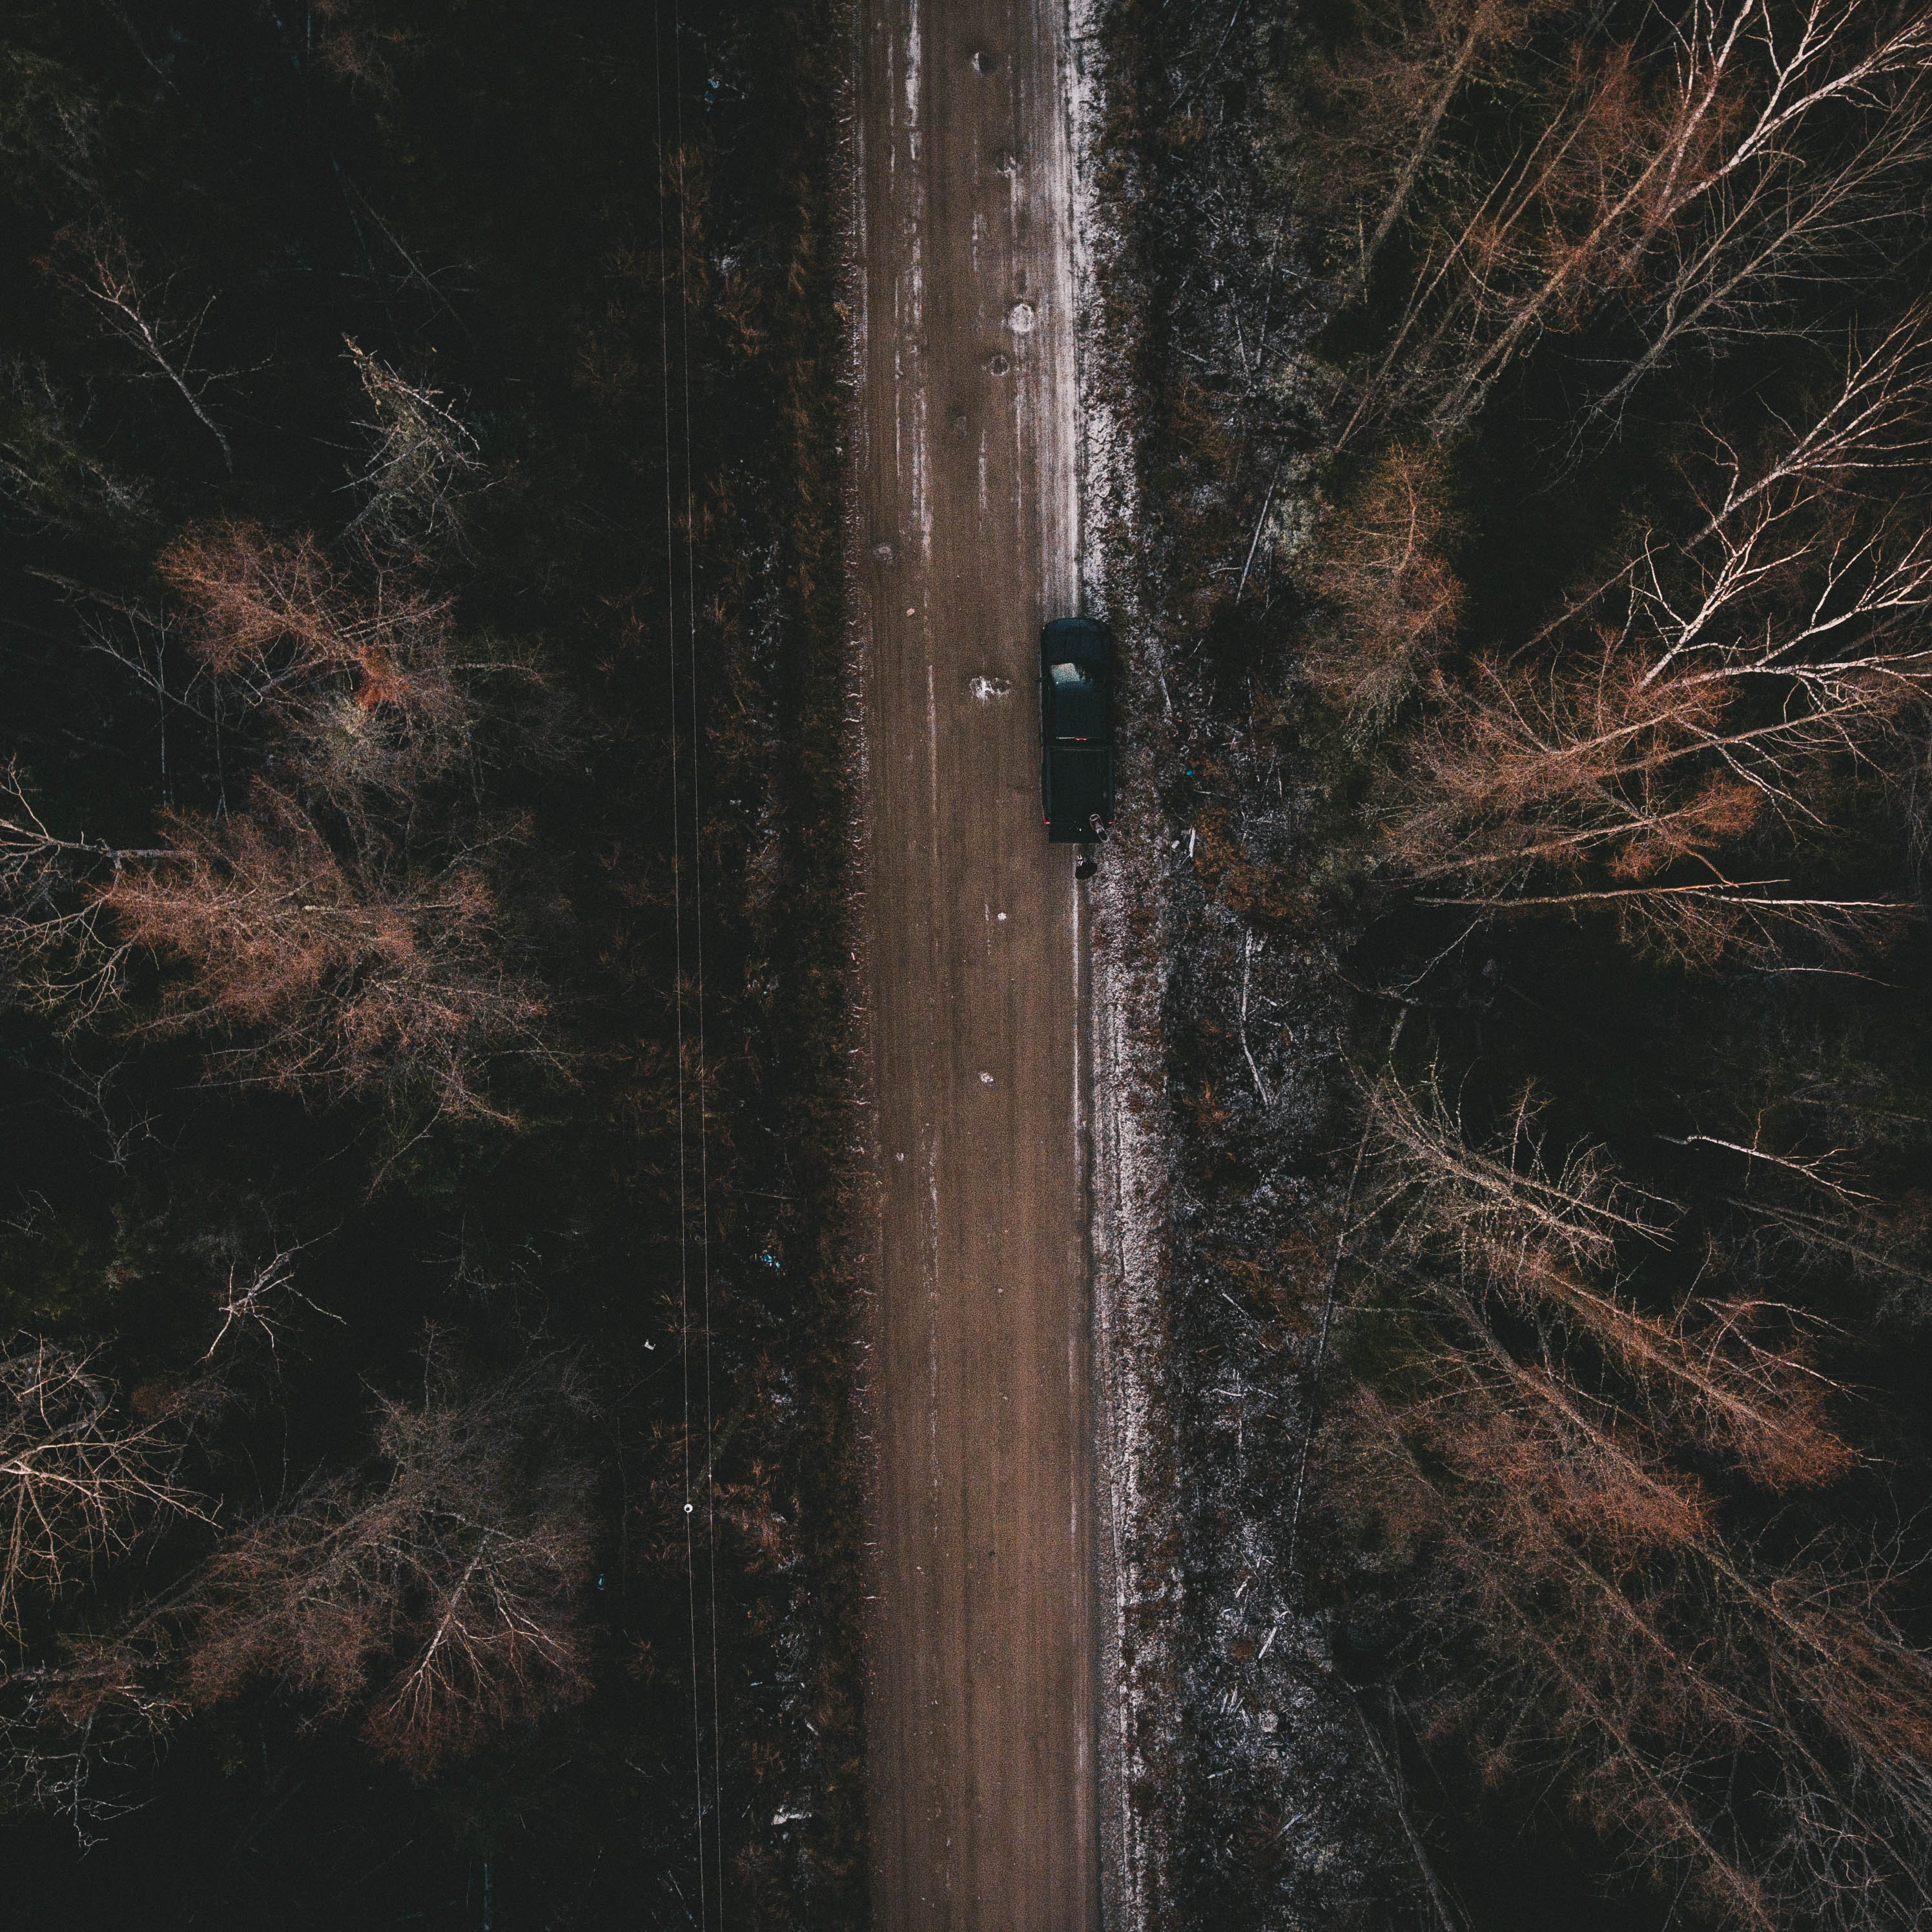 bird's eye view of highway in the middle of a forest